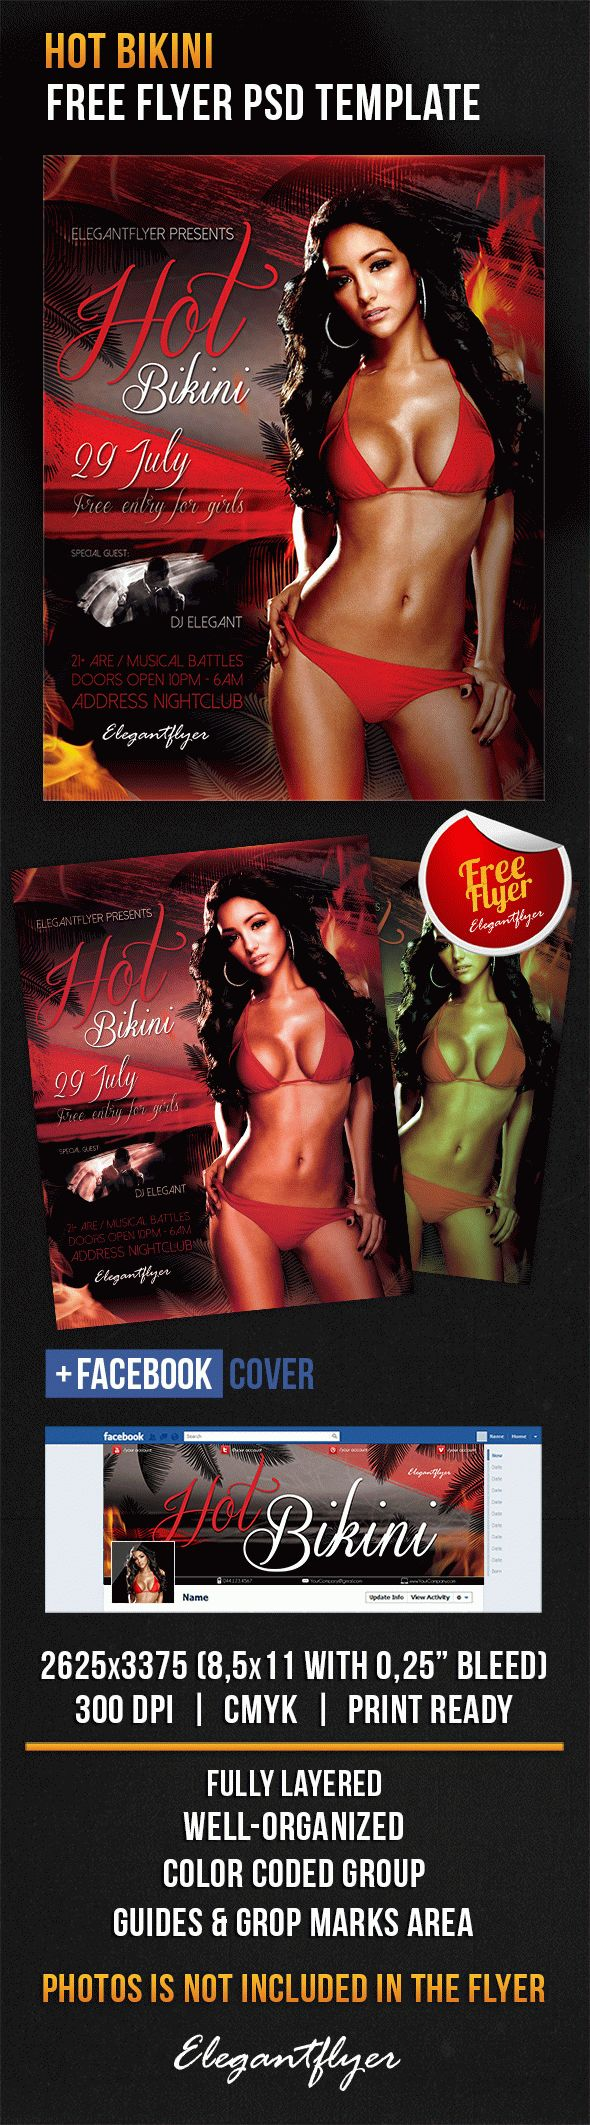 Hot Bikini – Free Flyer PSD Template + Facebook Cover